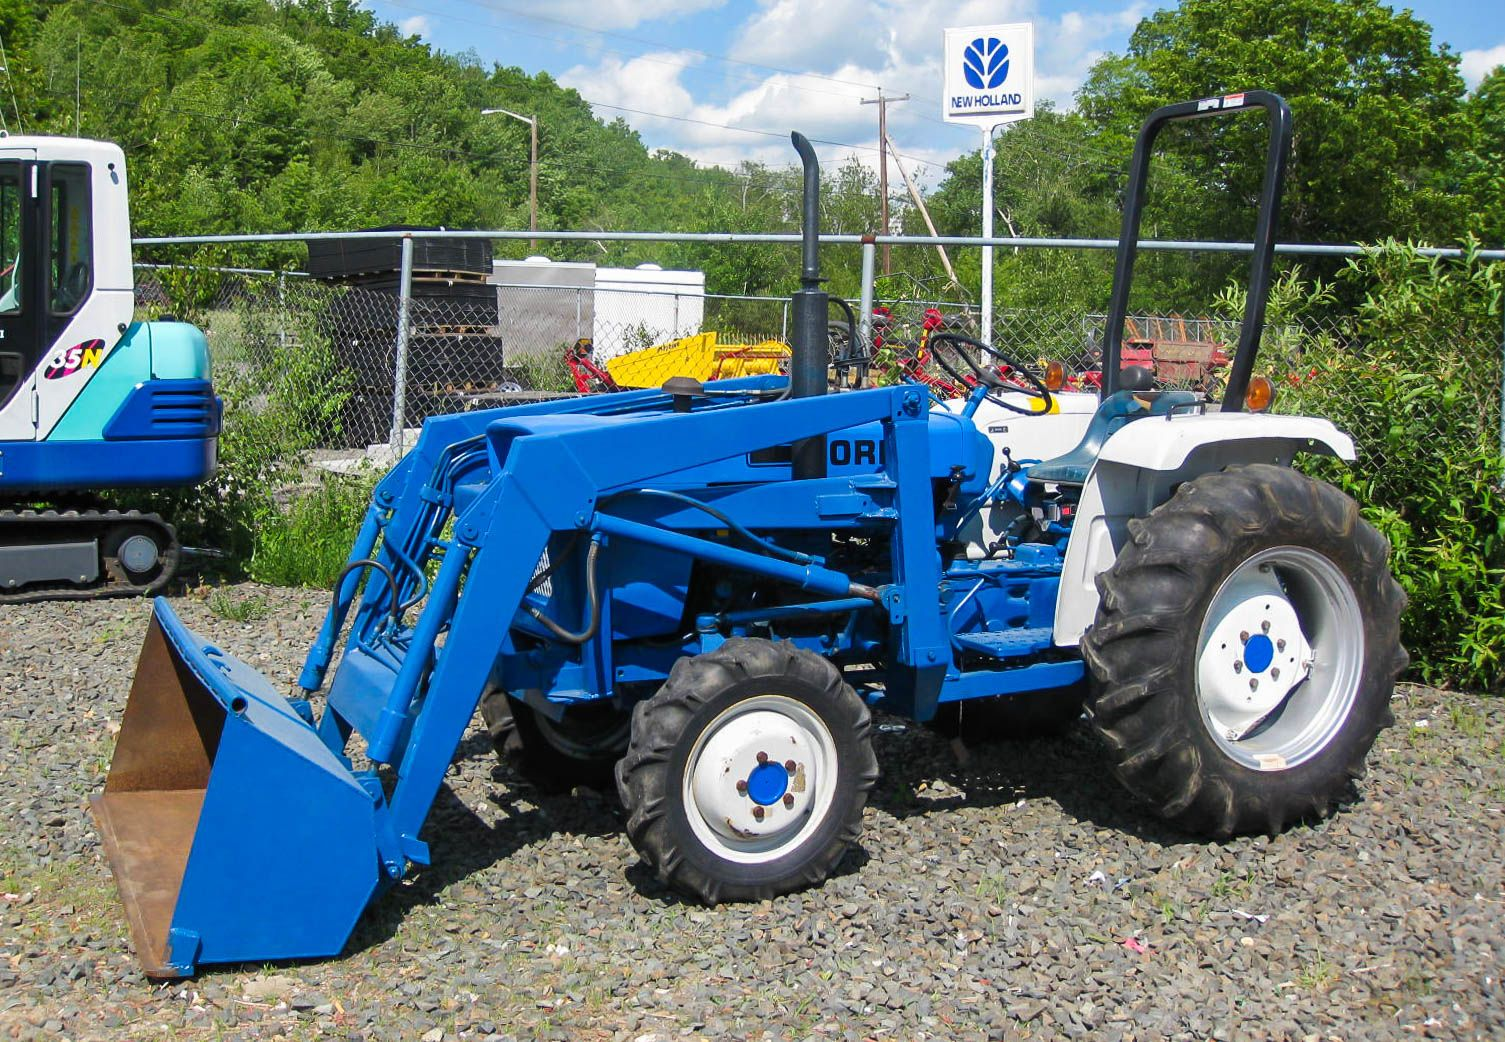 Ford Utility Tractor With Front End Loader Tractors Ford Tractors New Holland Tractor